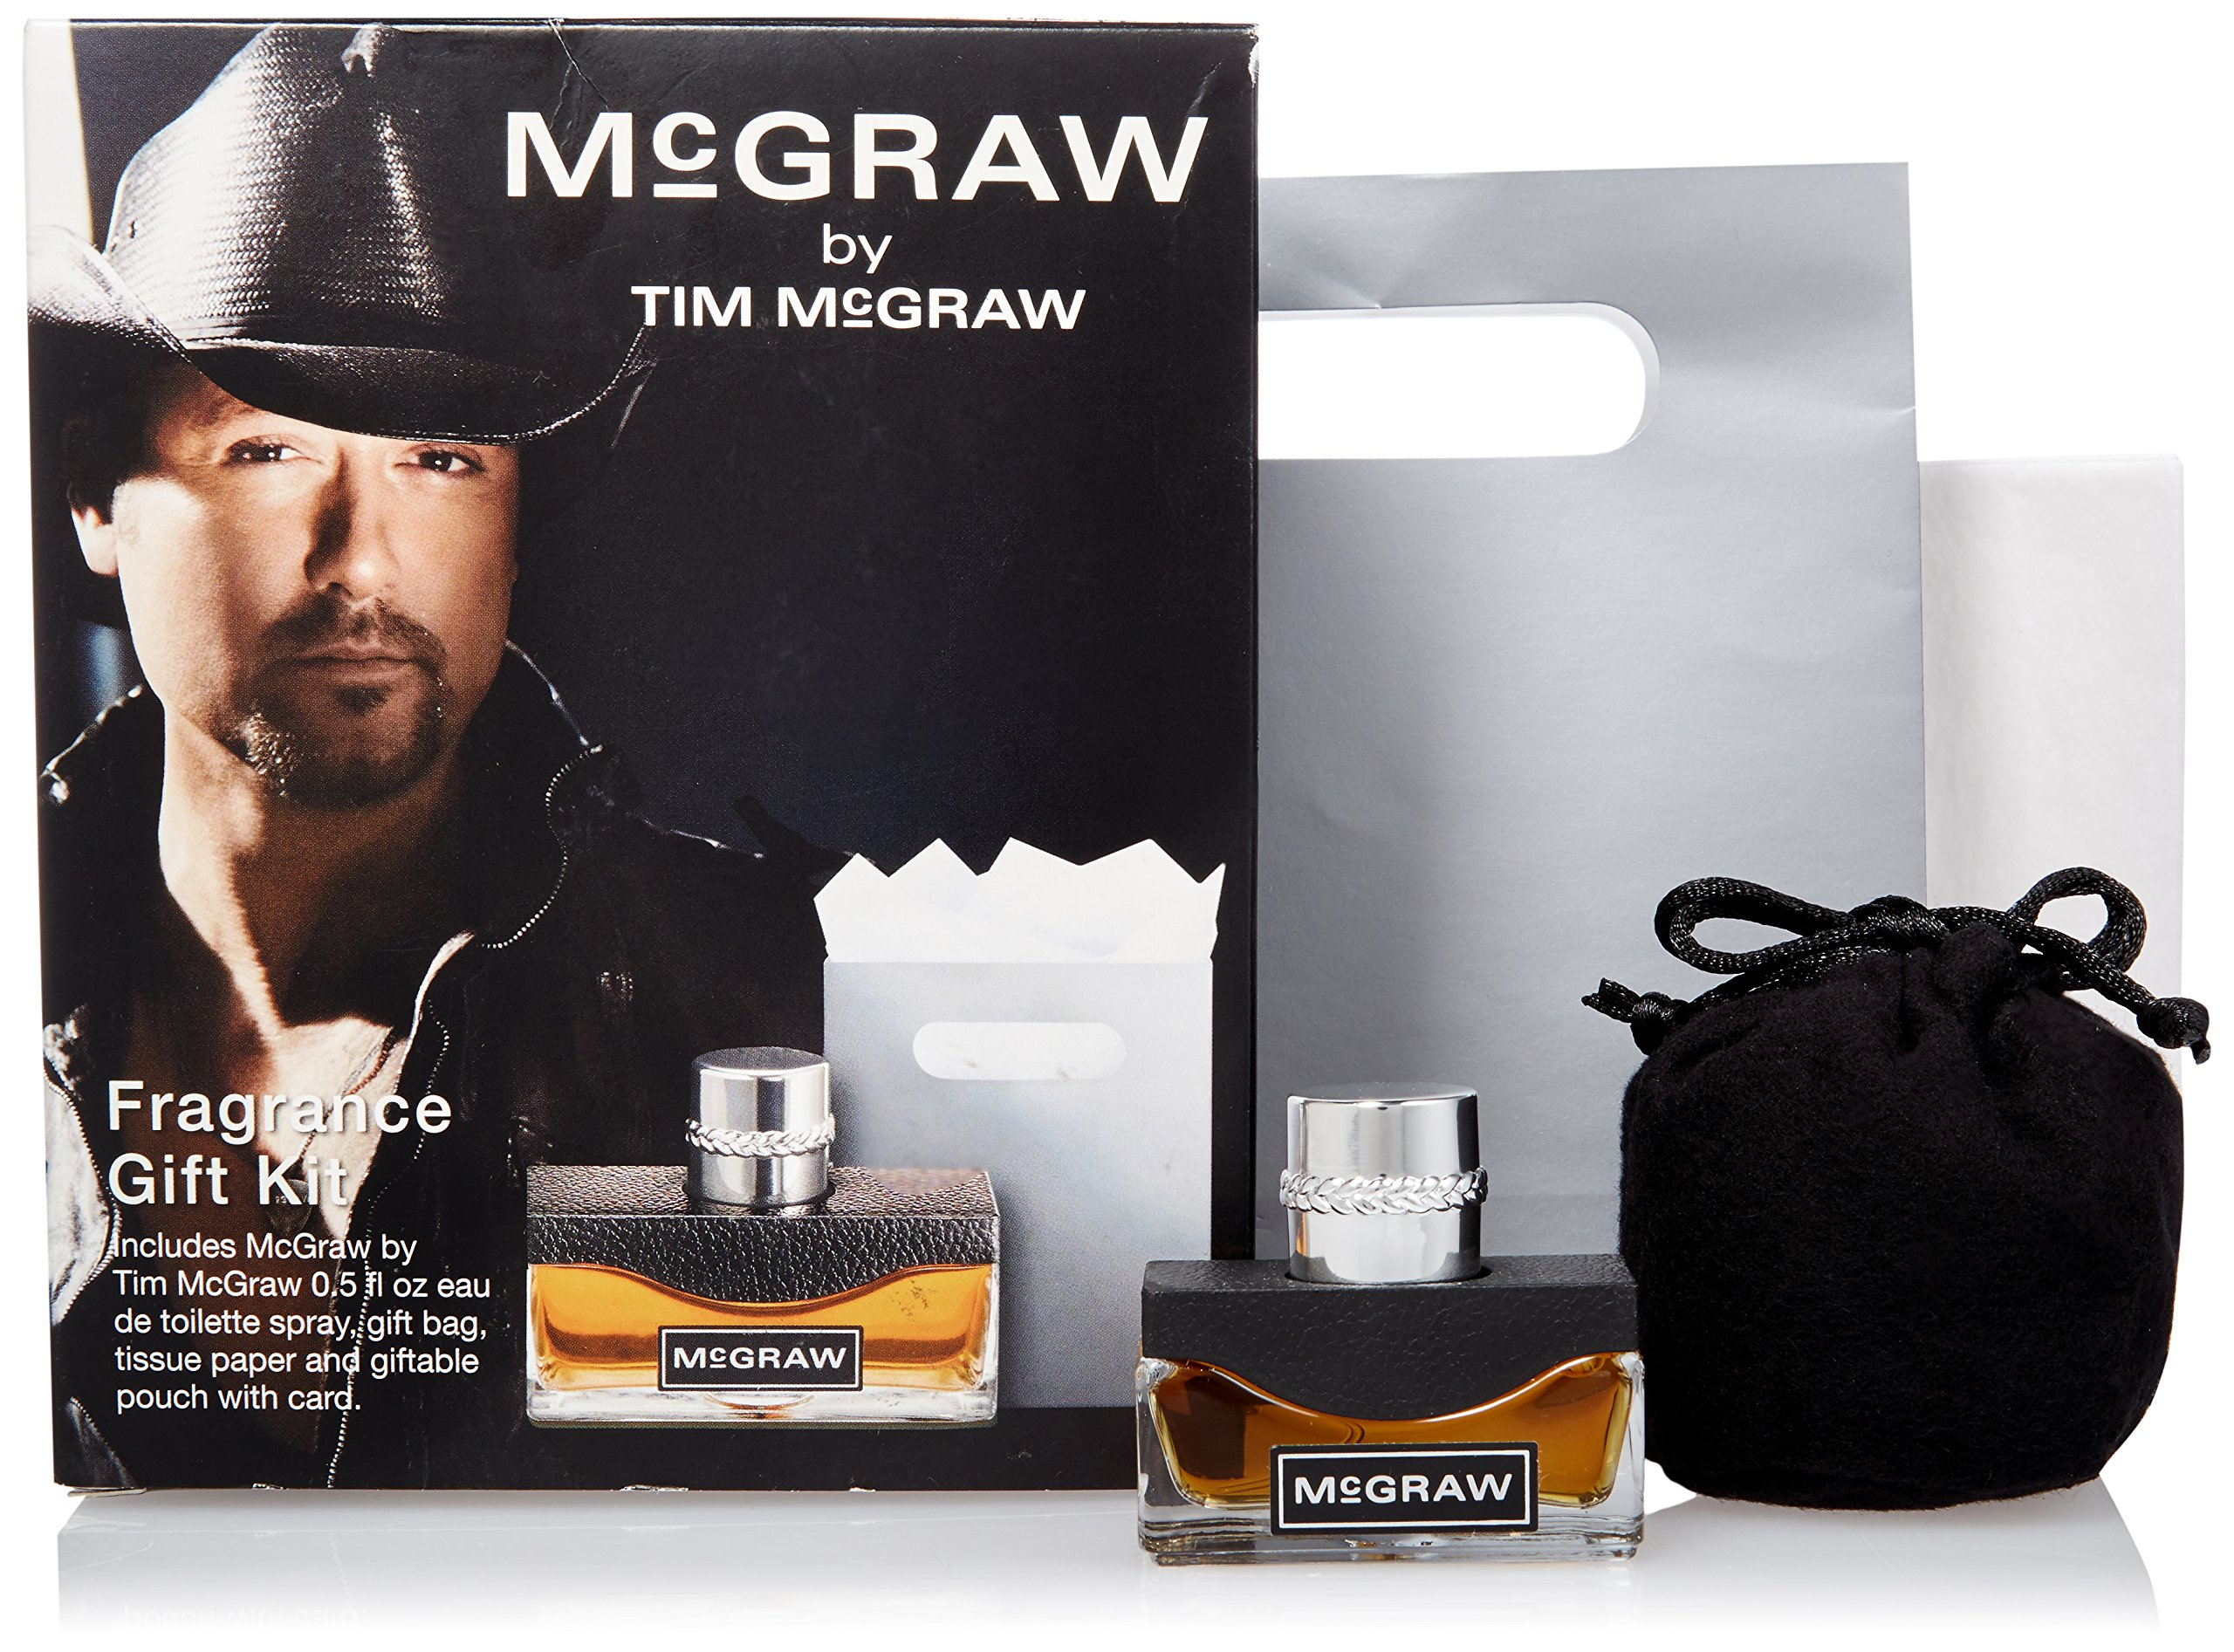 Tim Mcgraw Fragrance Gift Kit for Men